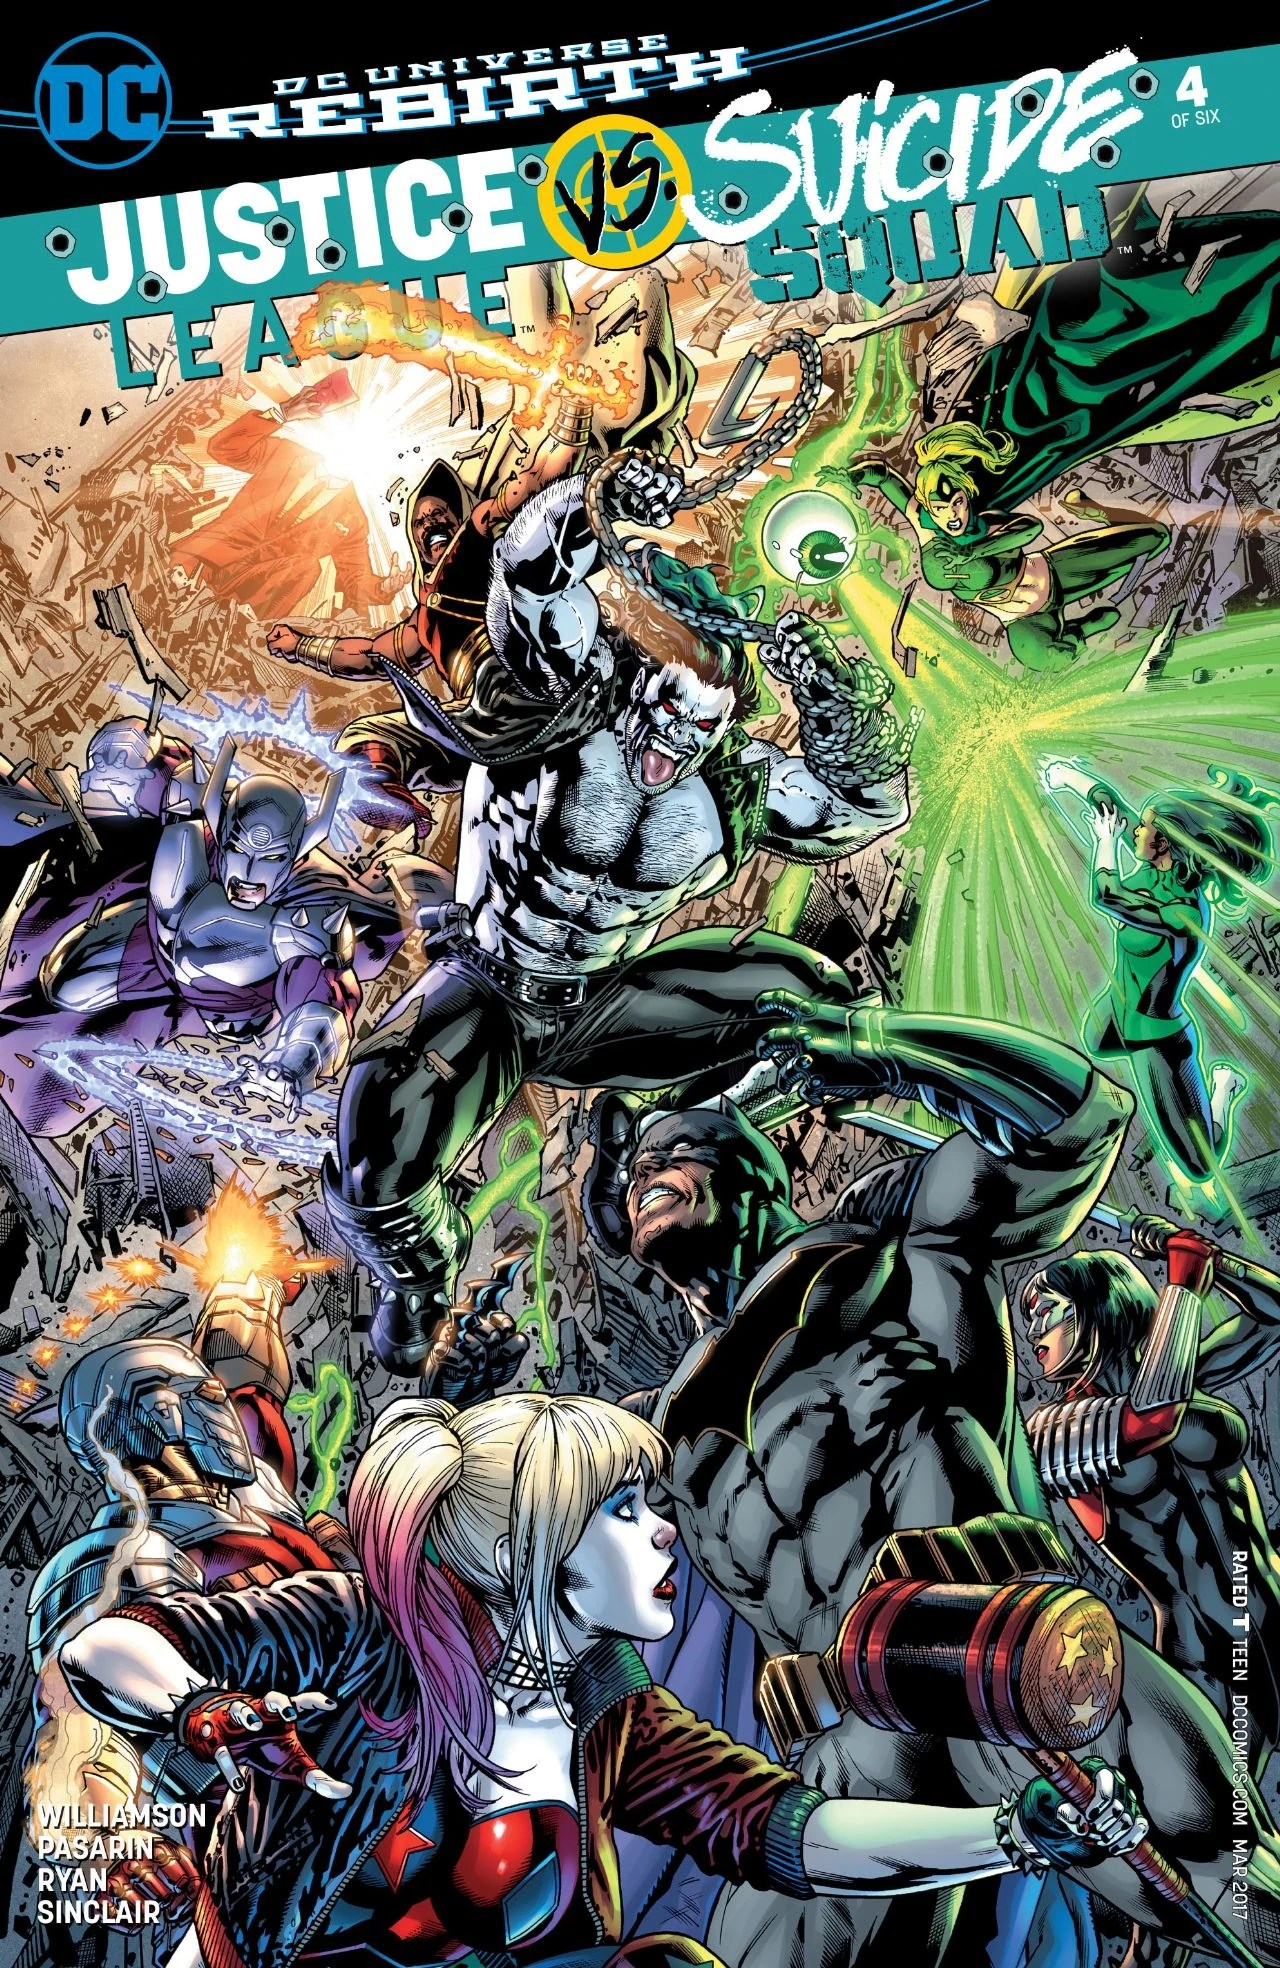 Justice League Vs Suicide Squad : justice, league, suicide, squad, Justice, League, Suicide, Squad, Database, Fandom